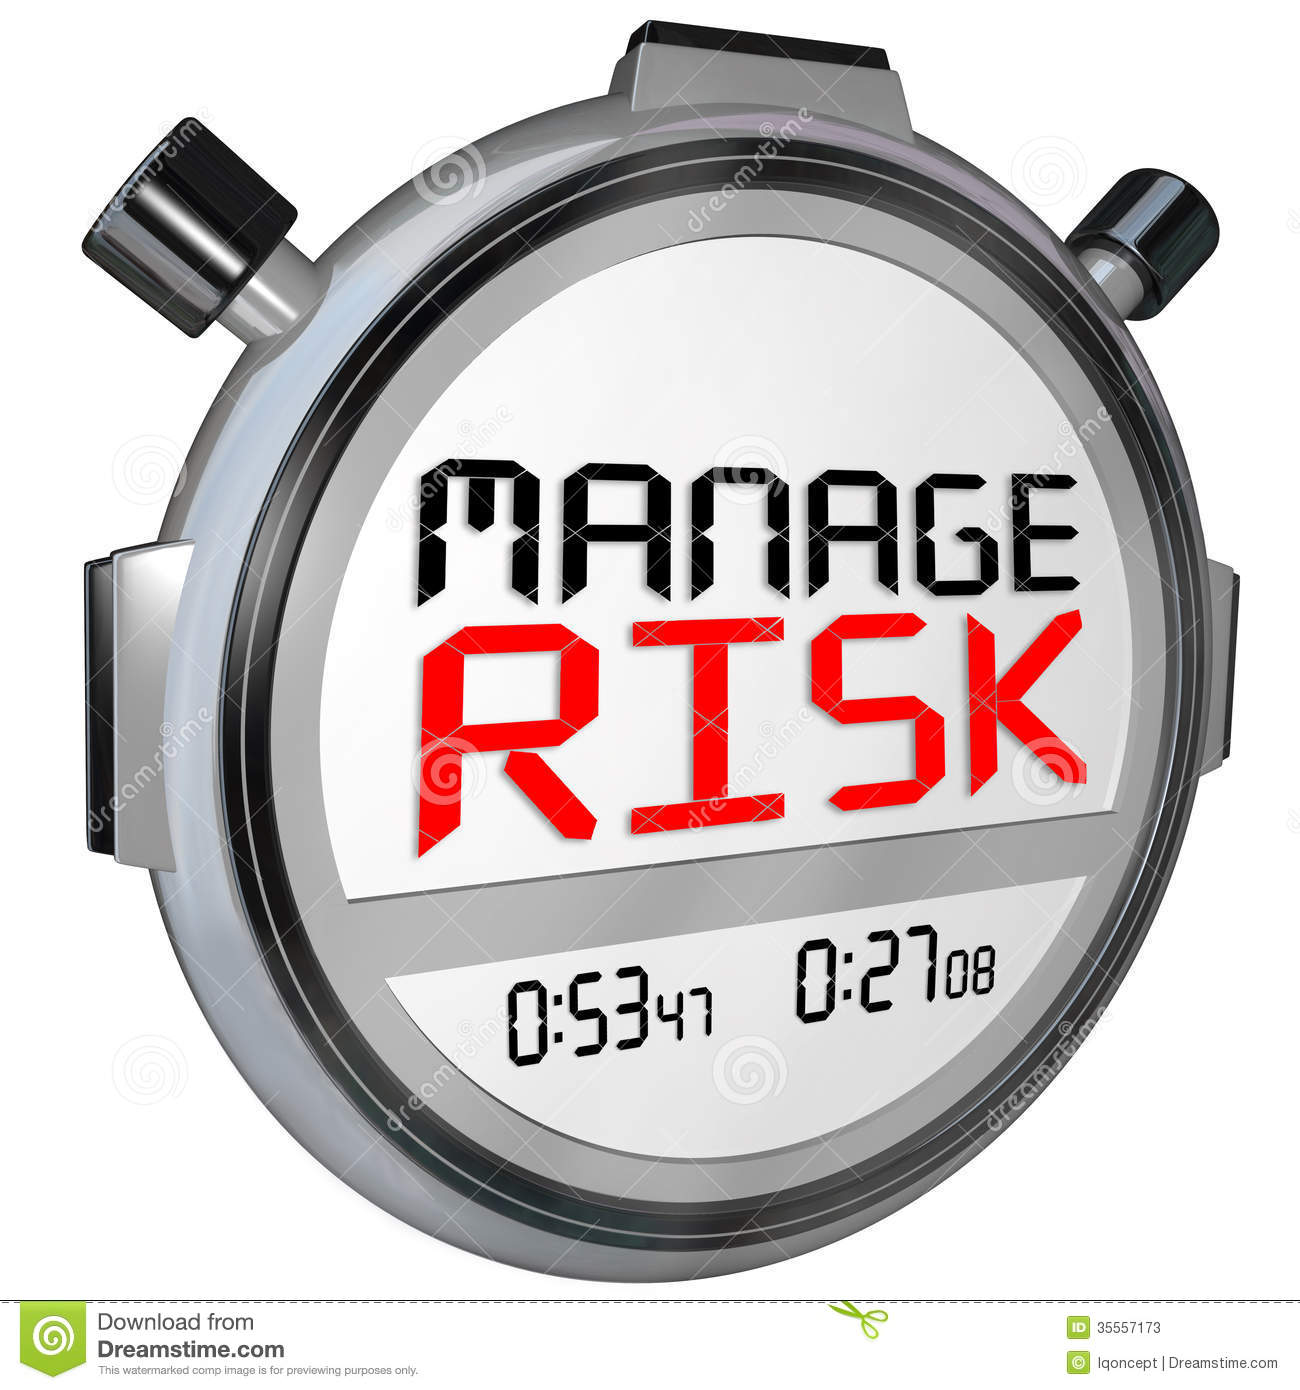 Manage Your Opportunities Be: Manage Risk Now Stopwatch Timer Speed Stock Illustration